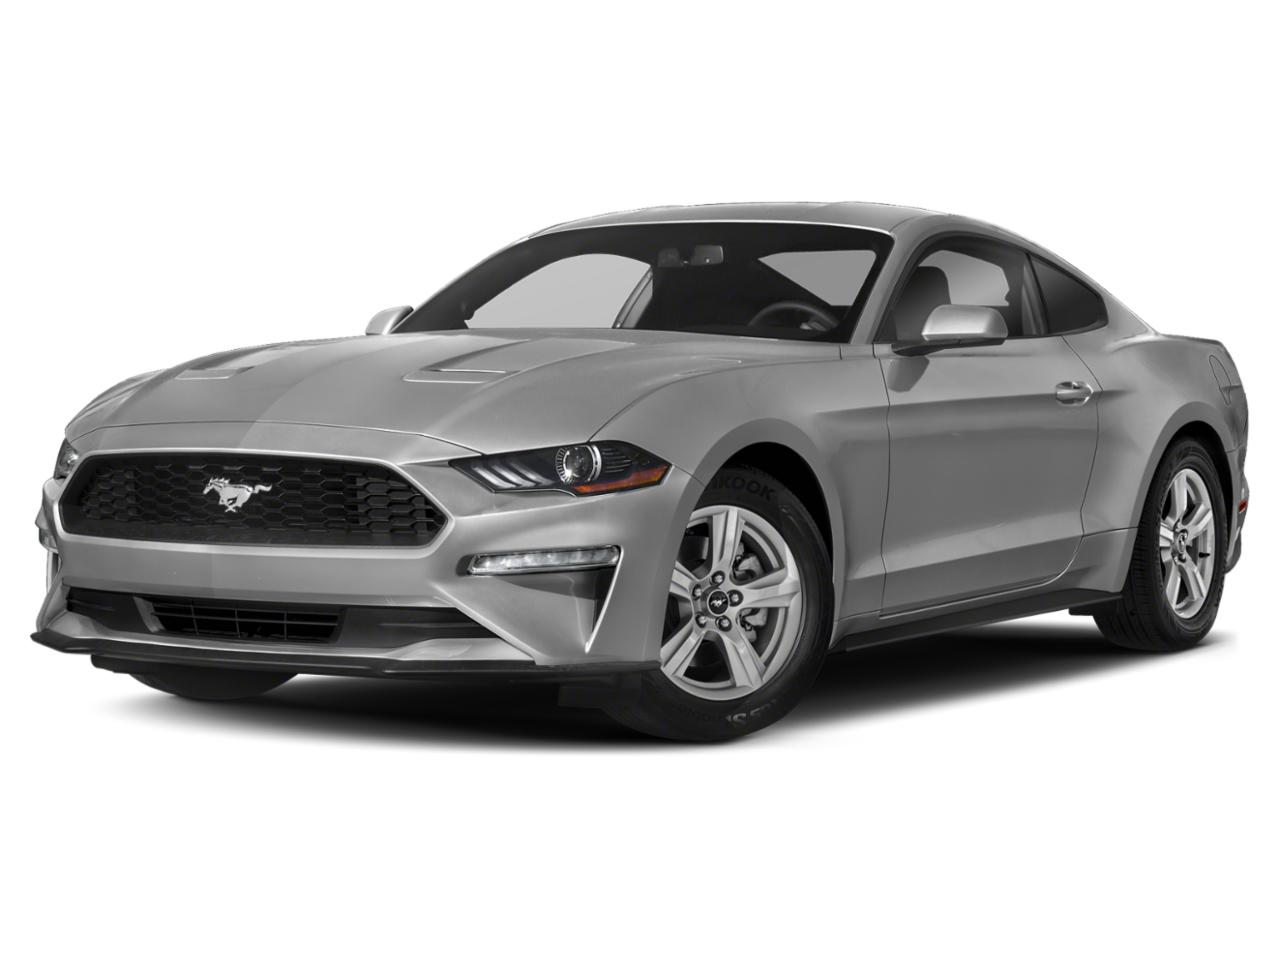 2018 Ford Mustang Vehicle Photo in BATON ROUGE, LA 70806-4464